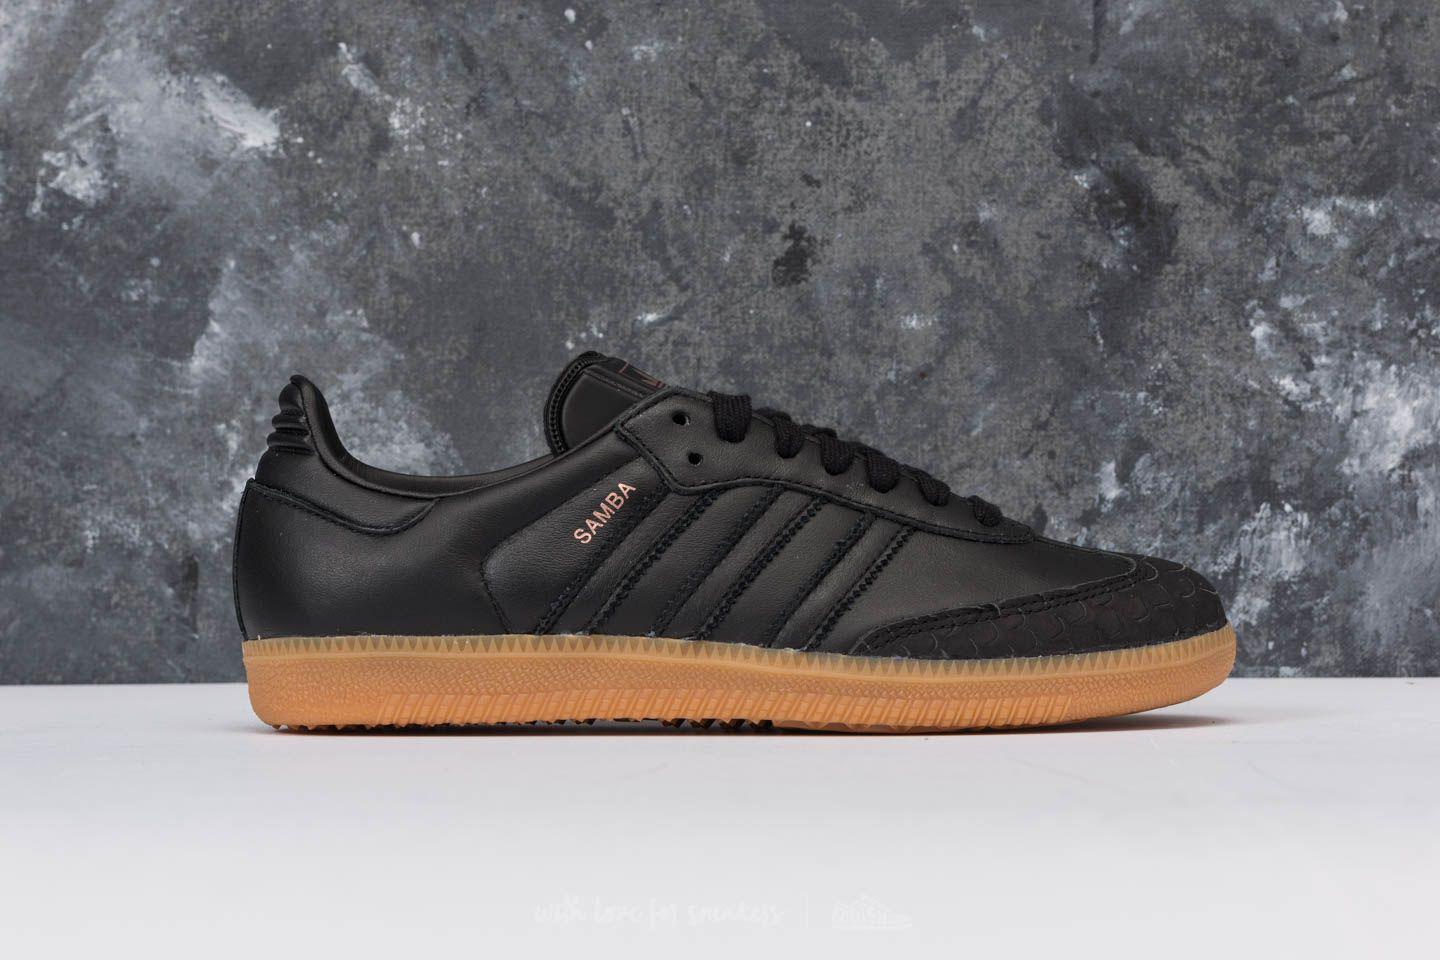 566e158c9 Gallery. Previously sold at: Footshop · Women's Adidas Samba Sneakers